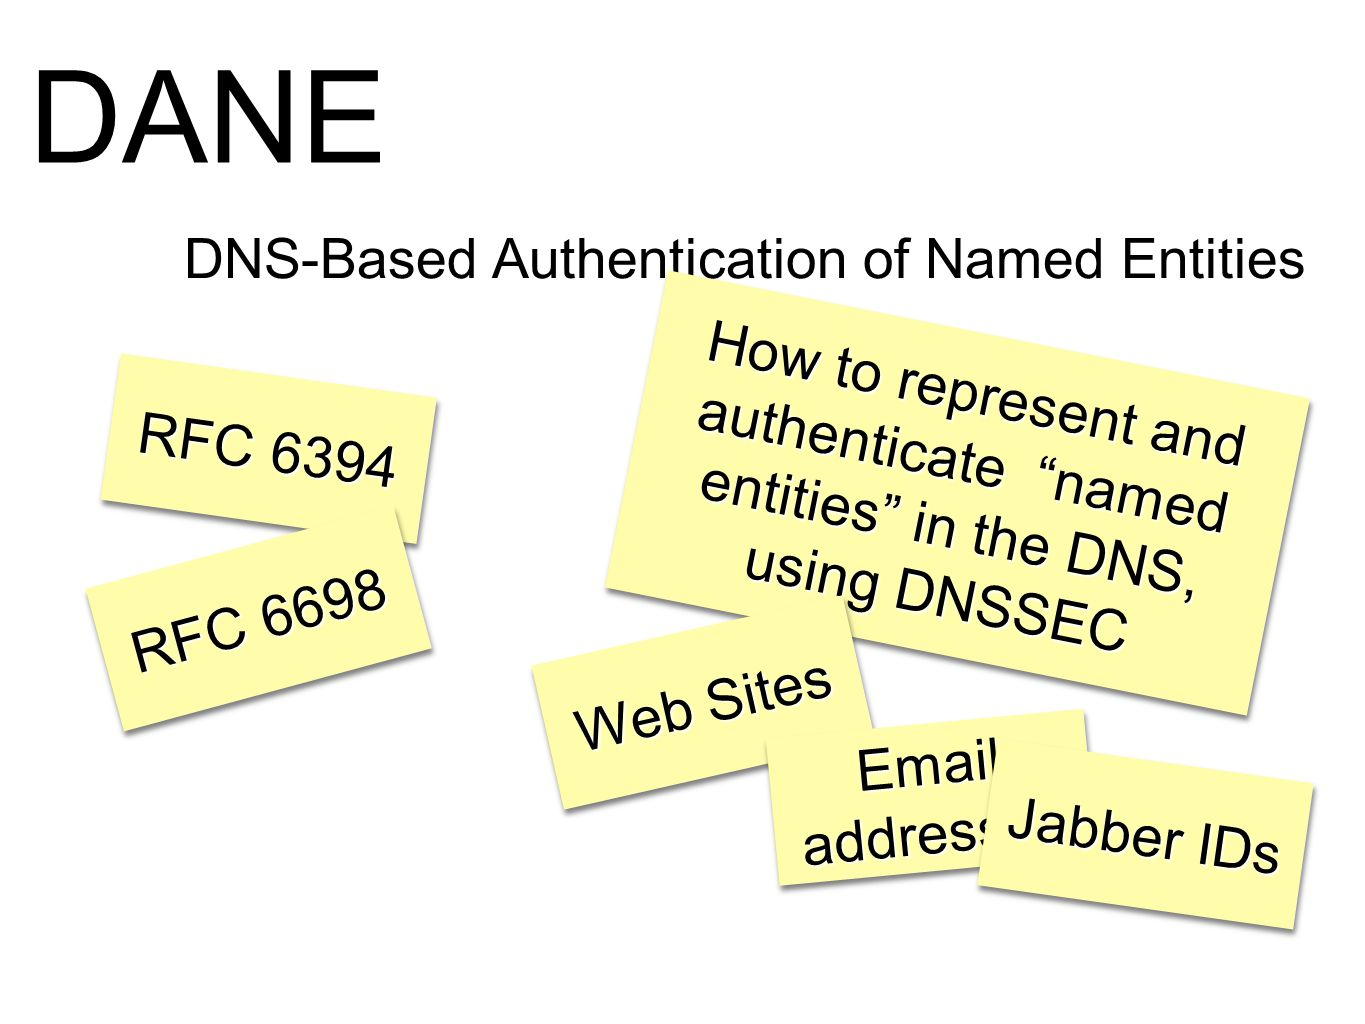 DANE DNS-Based Authentication of Named Entities How to represent and authenticate named entities in the DNS, using DNSSEC Web Sites Email addresses Jabber IDs RFC 6394 RFC 6698